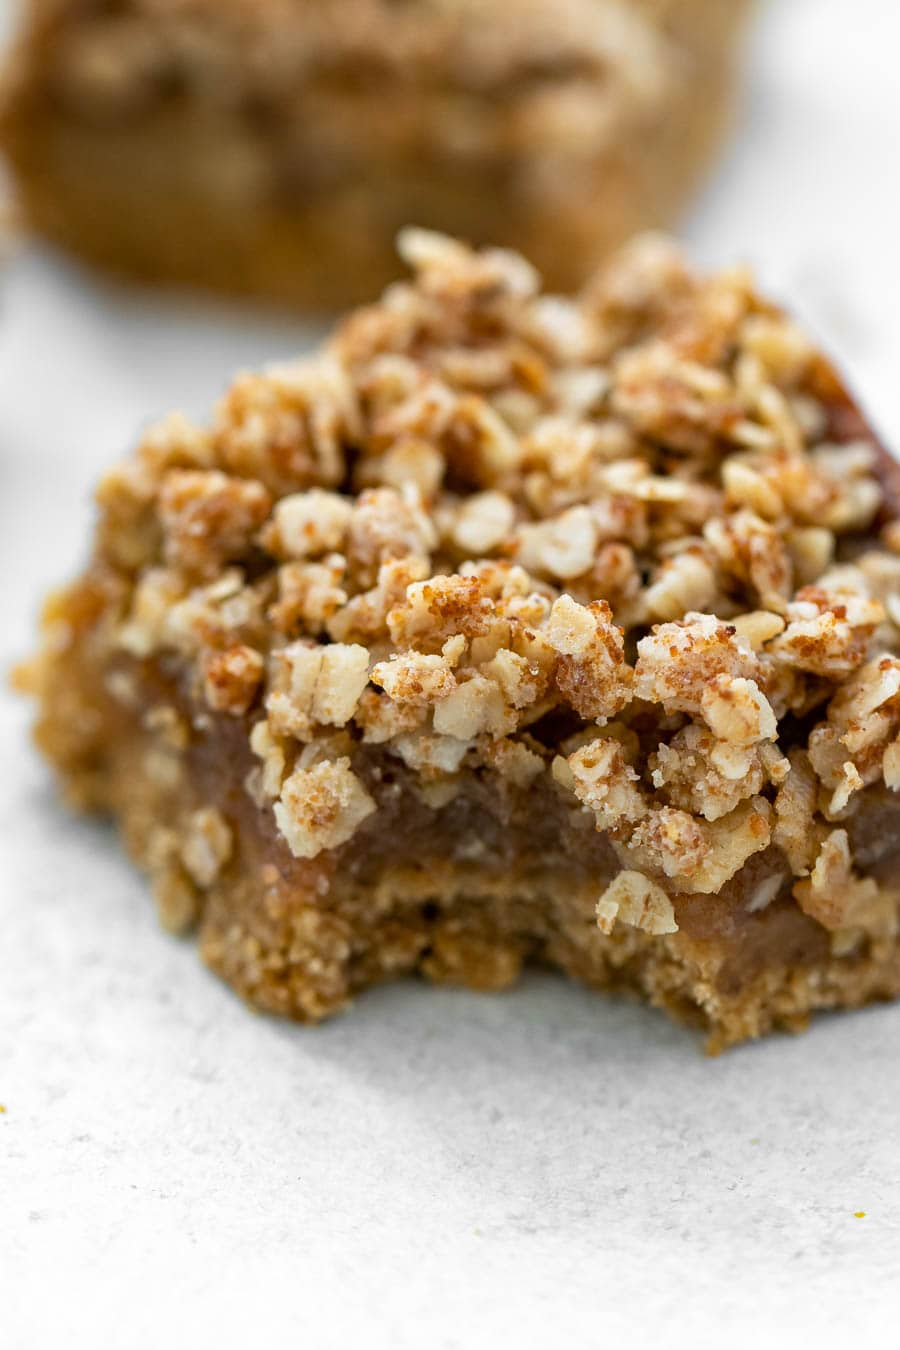 Up close of the crumble for the recipe.